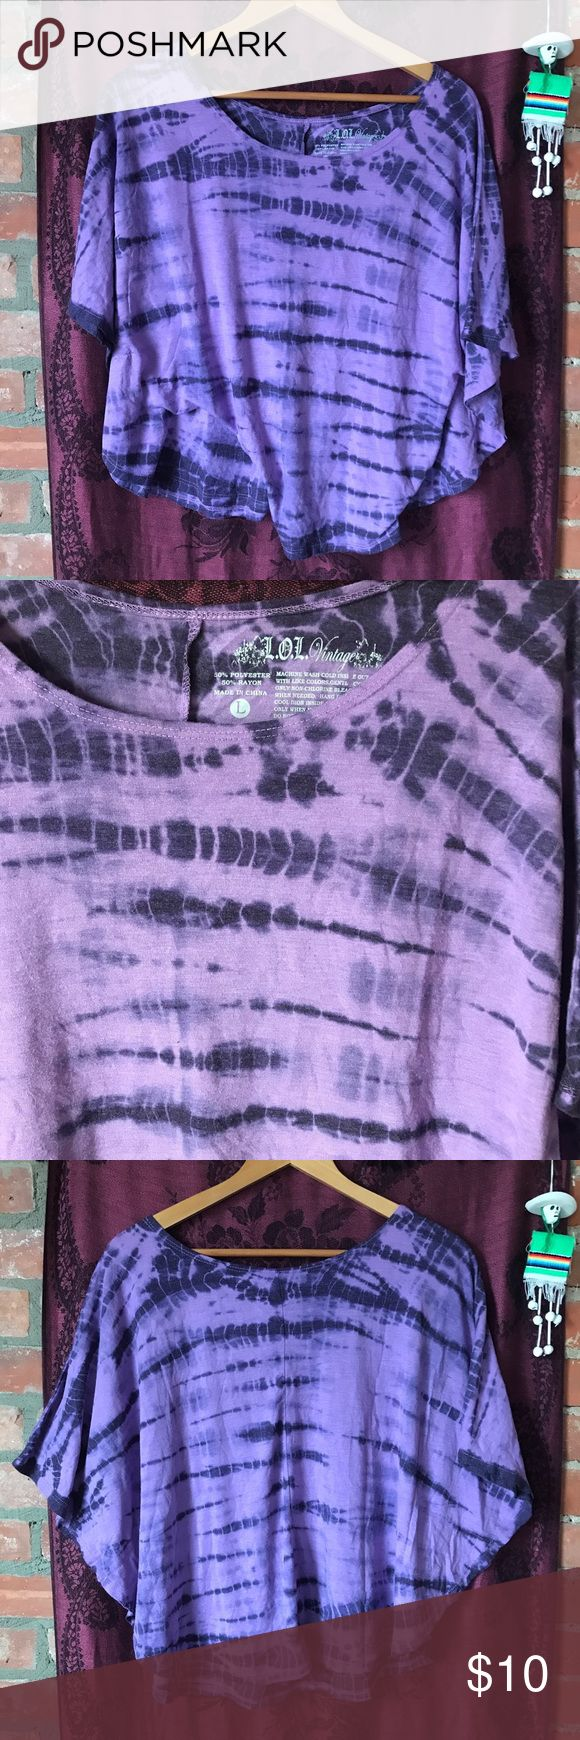 purple tie dye top hippie festival crop shirt sexy purple tie dye top. great for hippie festivals. batwing style crop top shirt. size large. Urban Outfitters Tops Tunics